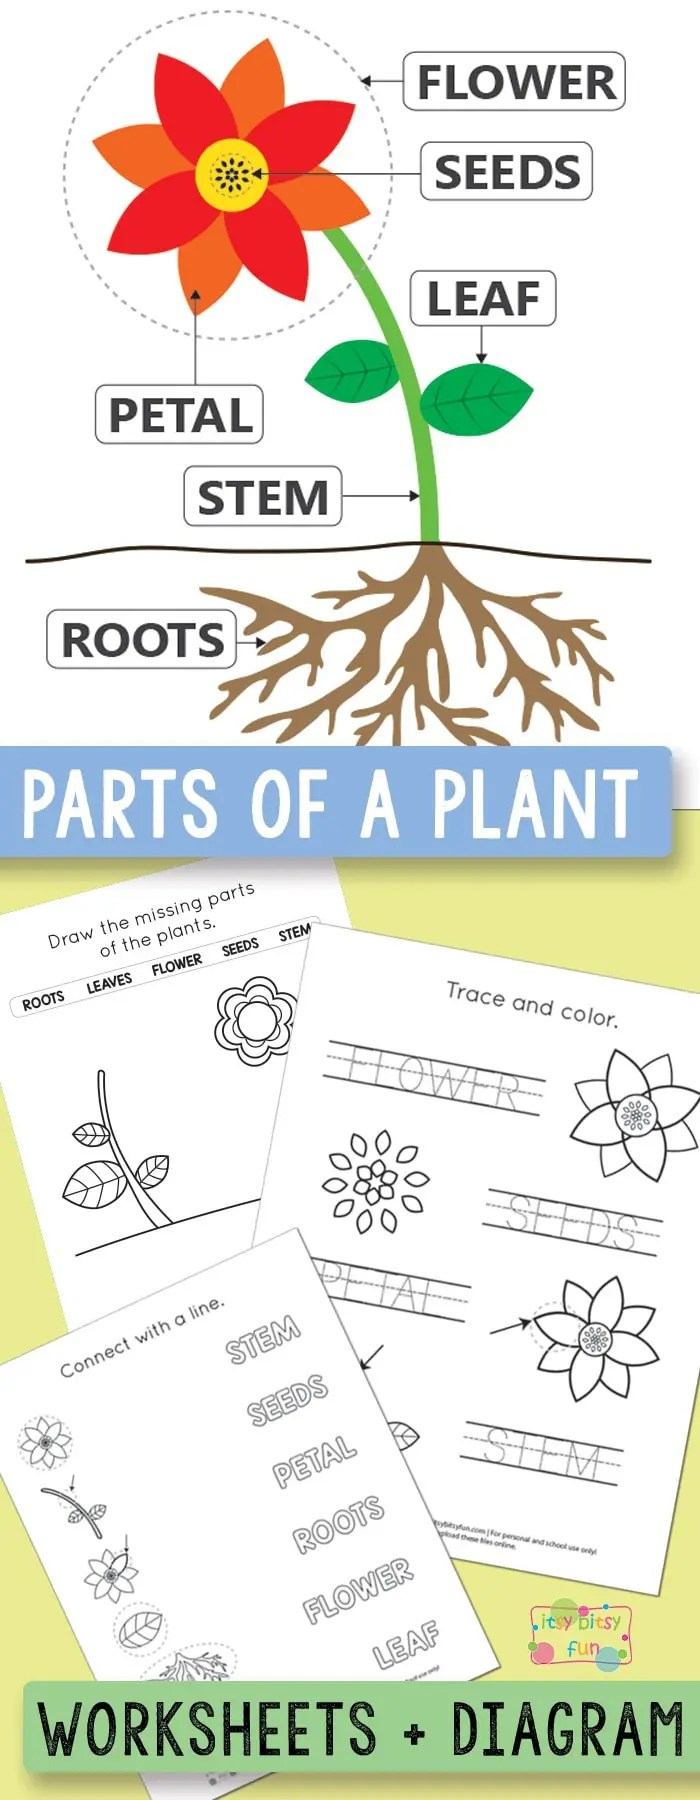 hight resolution of Free Printable Parts of a Plant Worksheets - itsybitsyfun.com